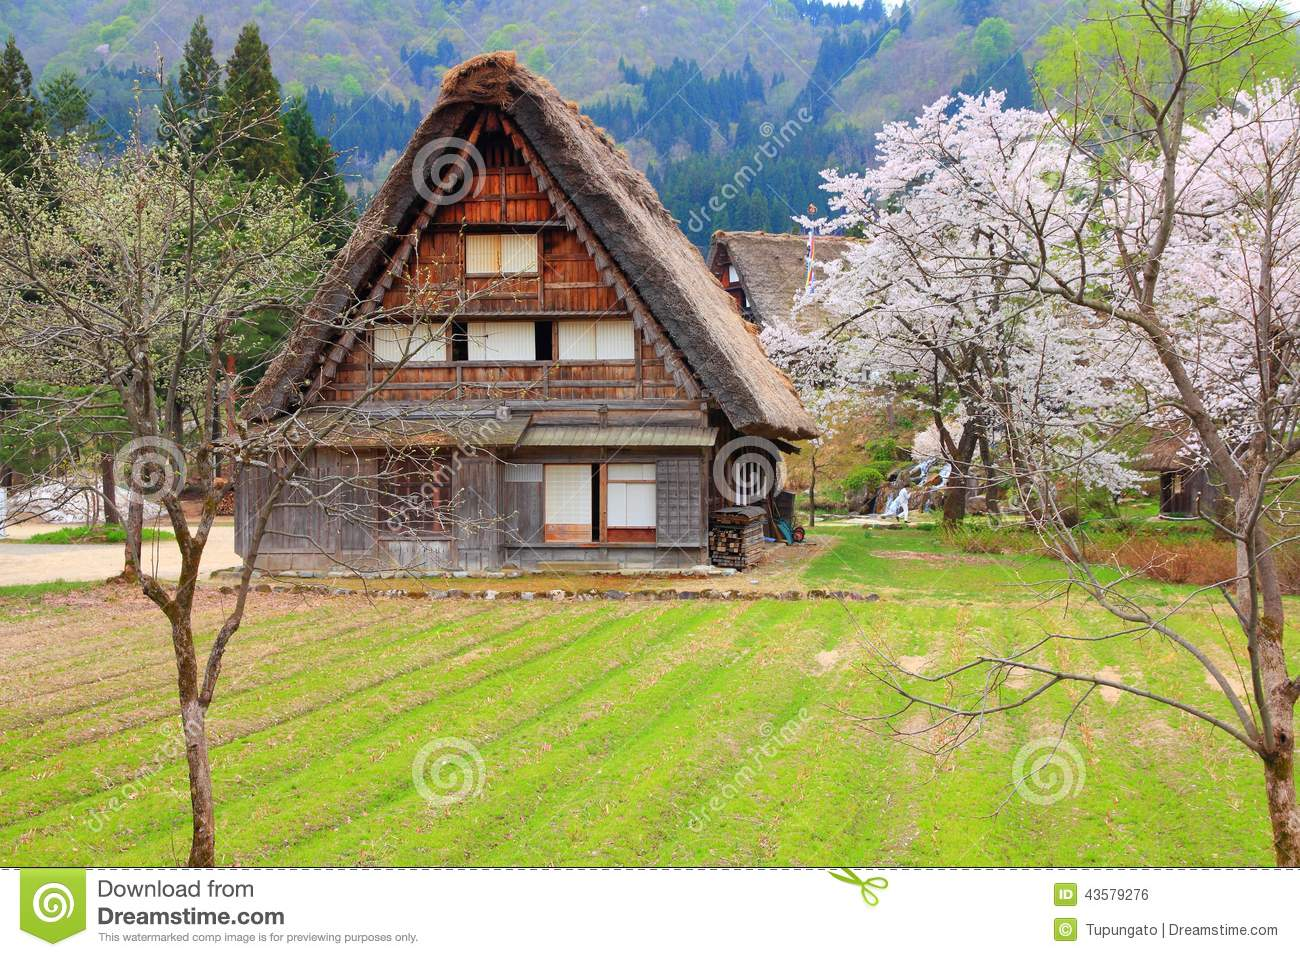 Japan Village Stock Photo - Image: 43579276